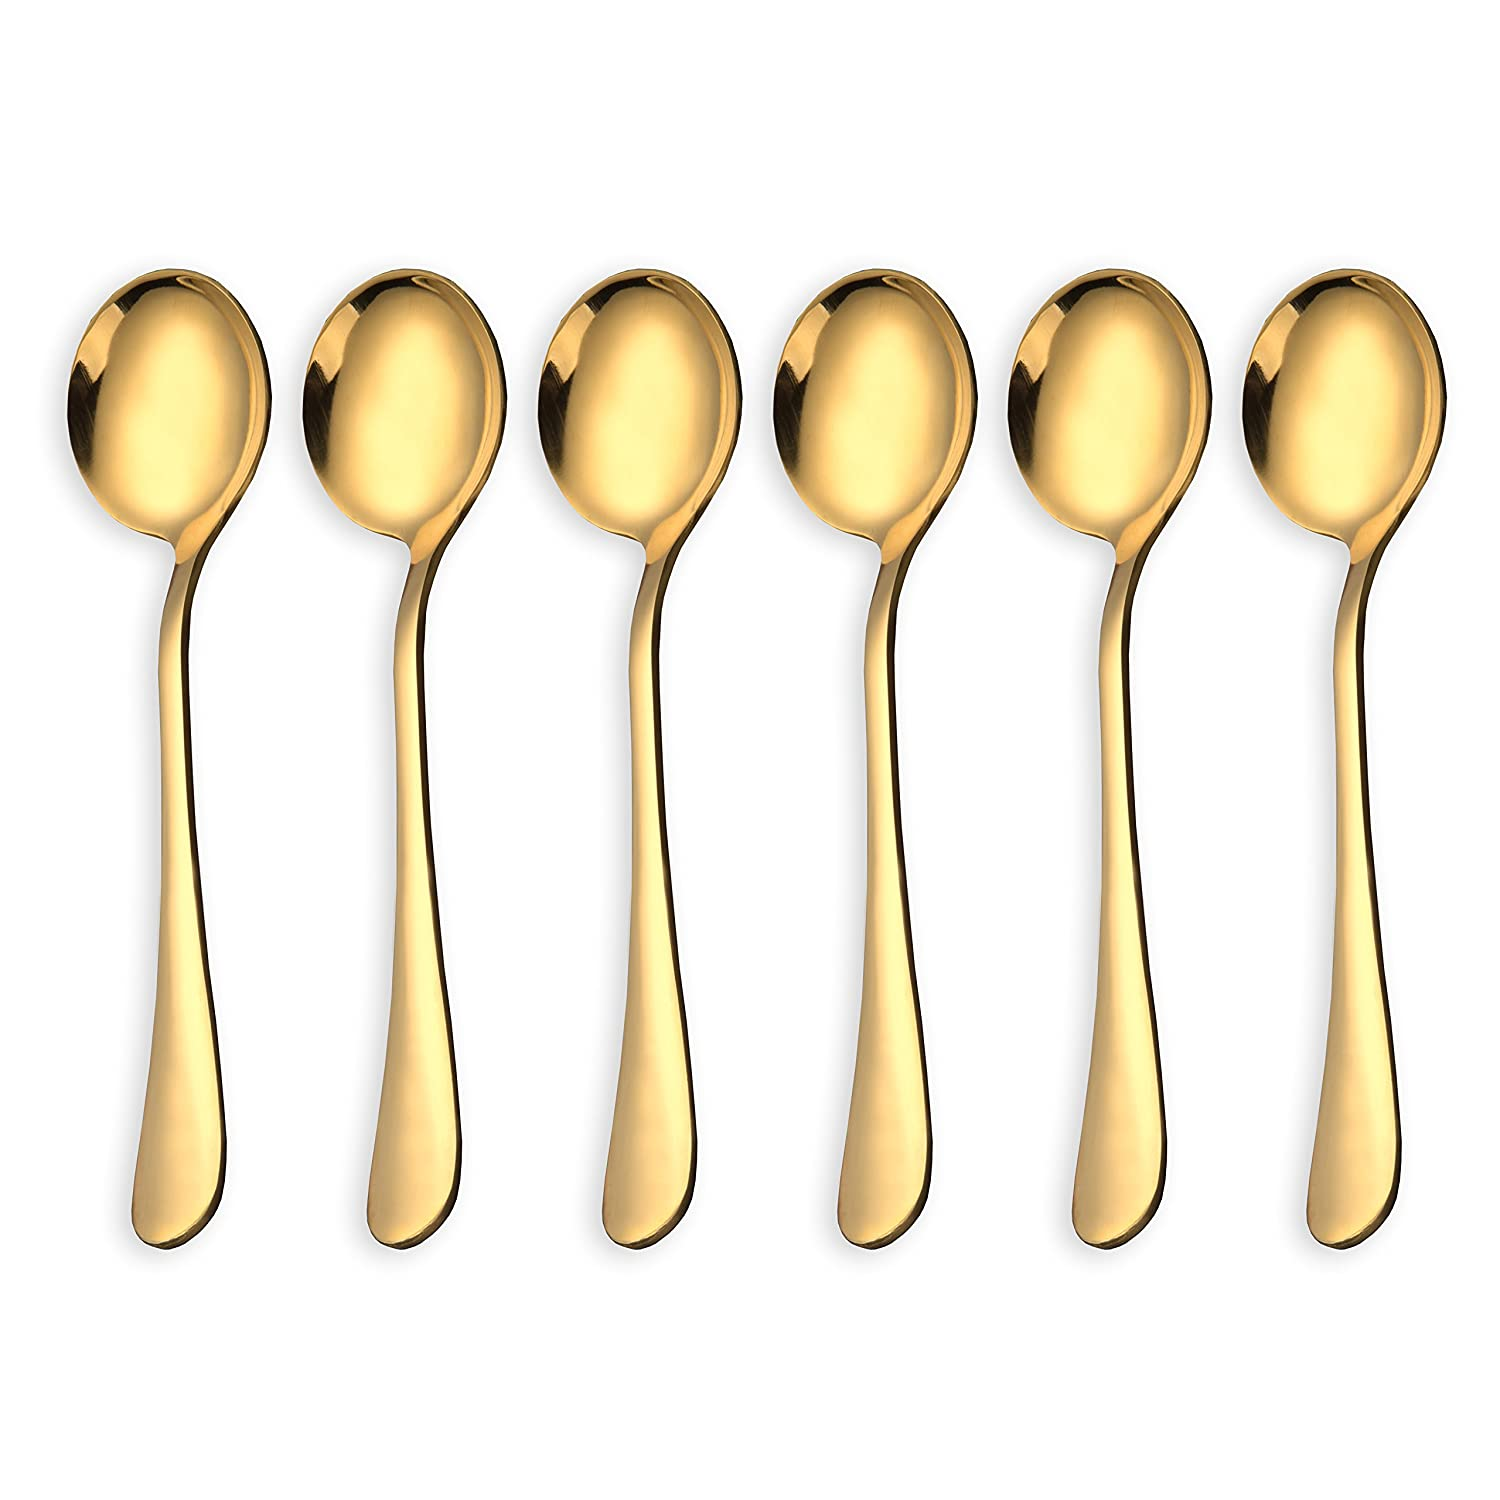 Black Soup Spoons, Stainless Steel Round Spoons, Set of 6 (7.31 inch) BERGLAND 88WSB-SS-6P